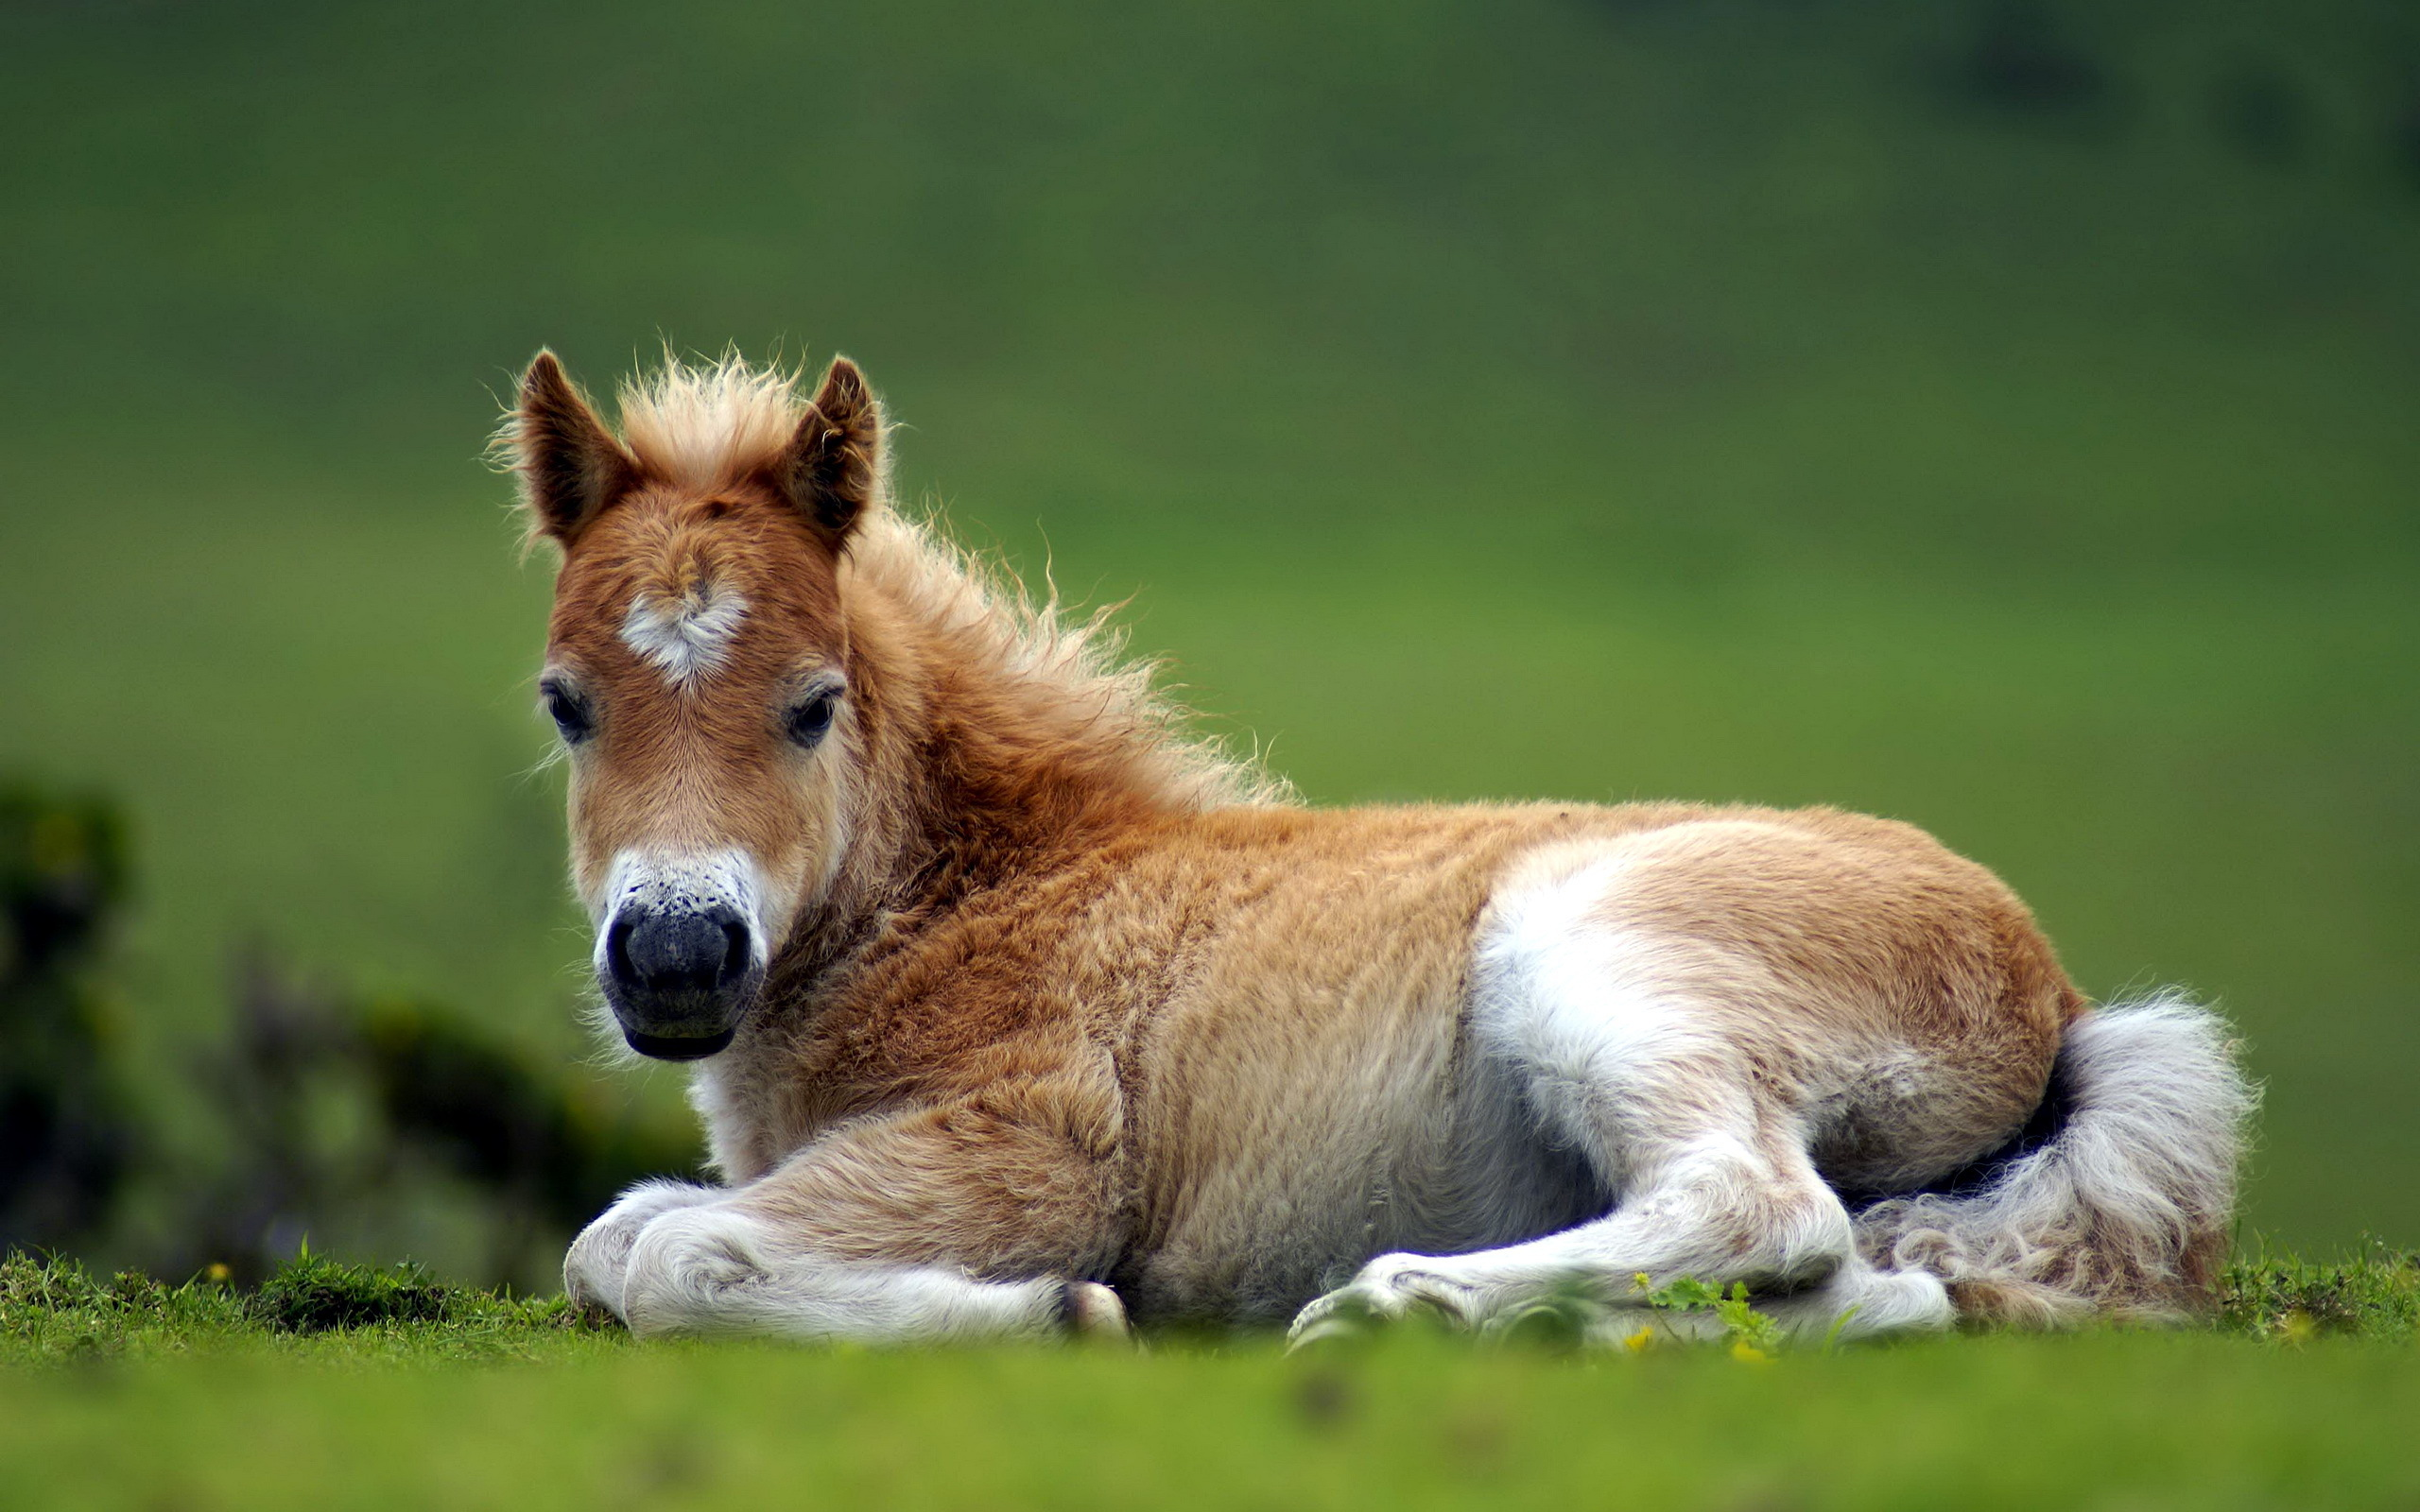 foal wallpaper